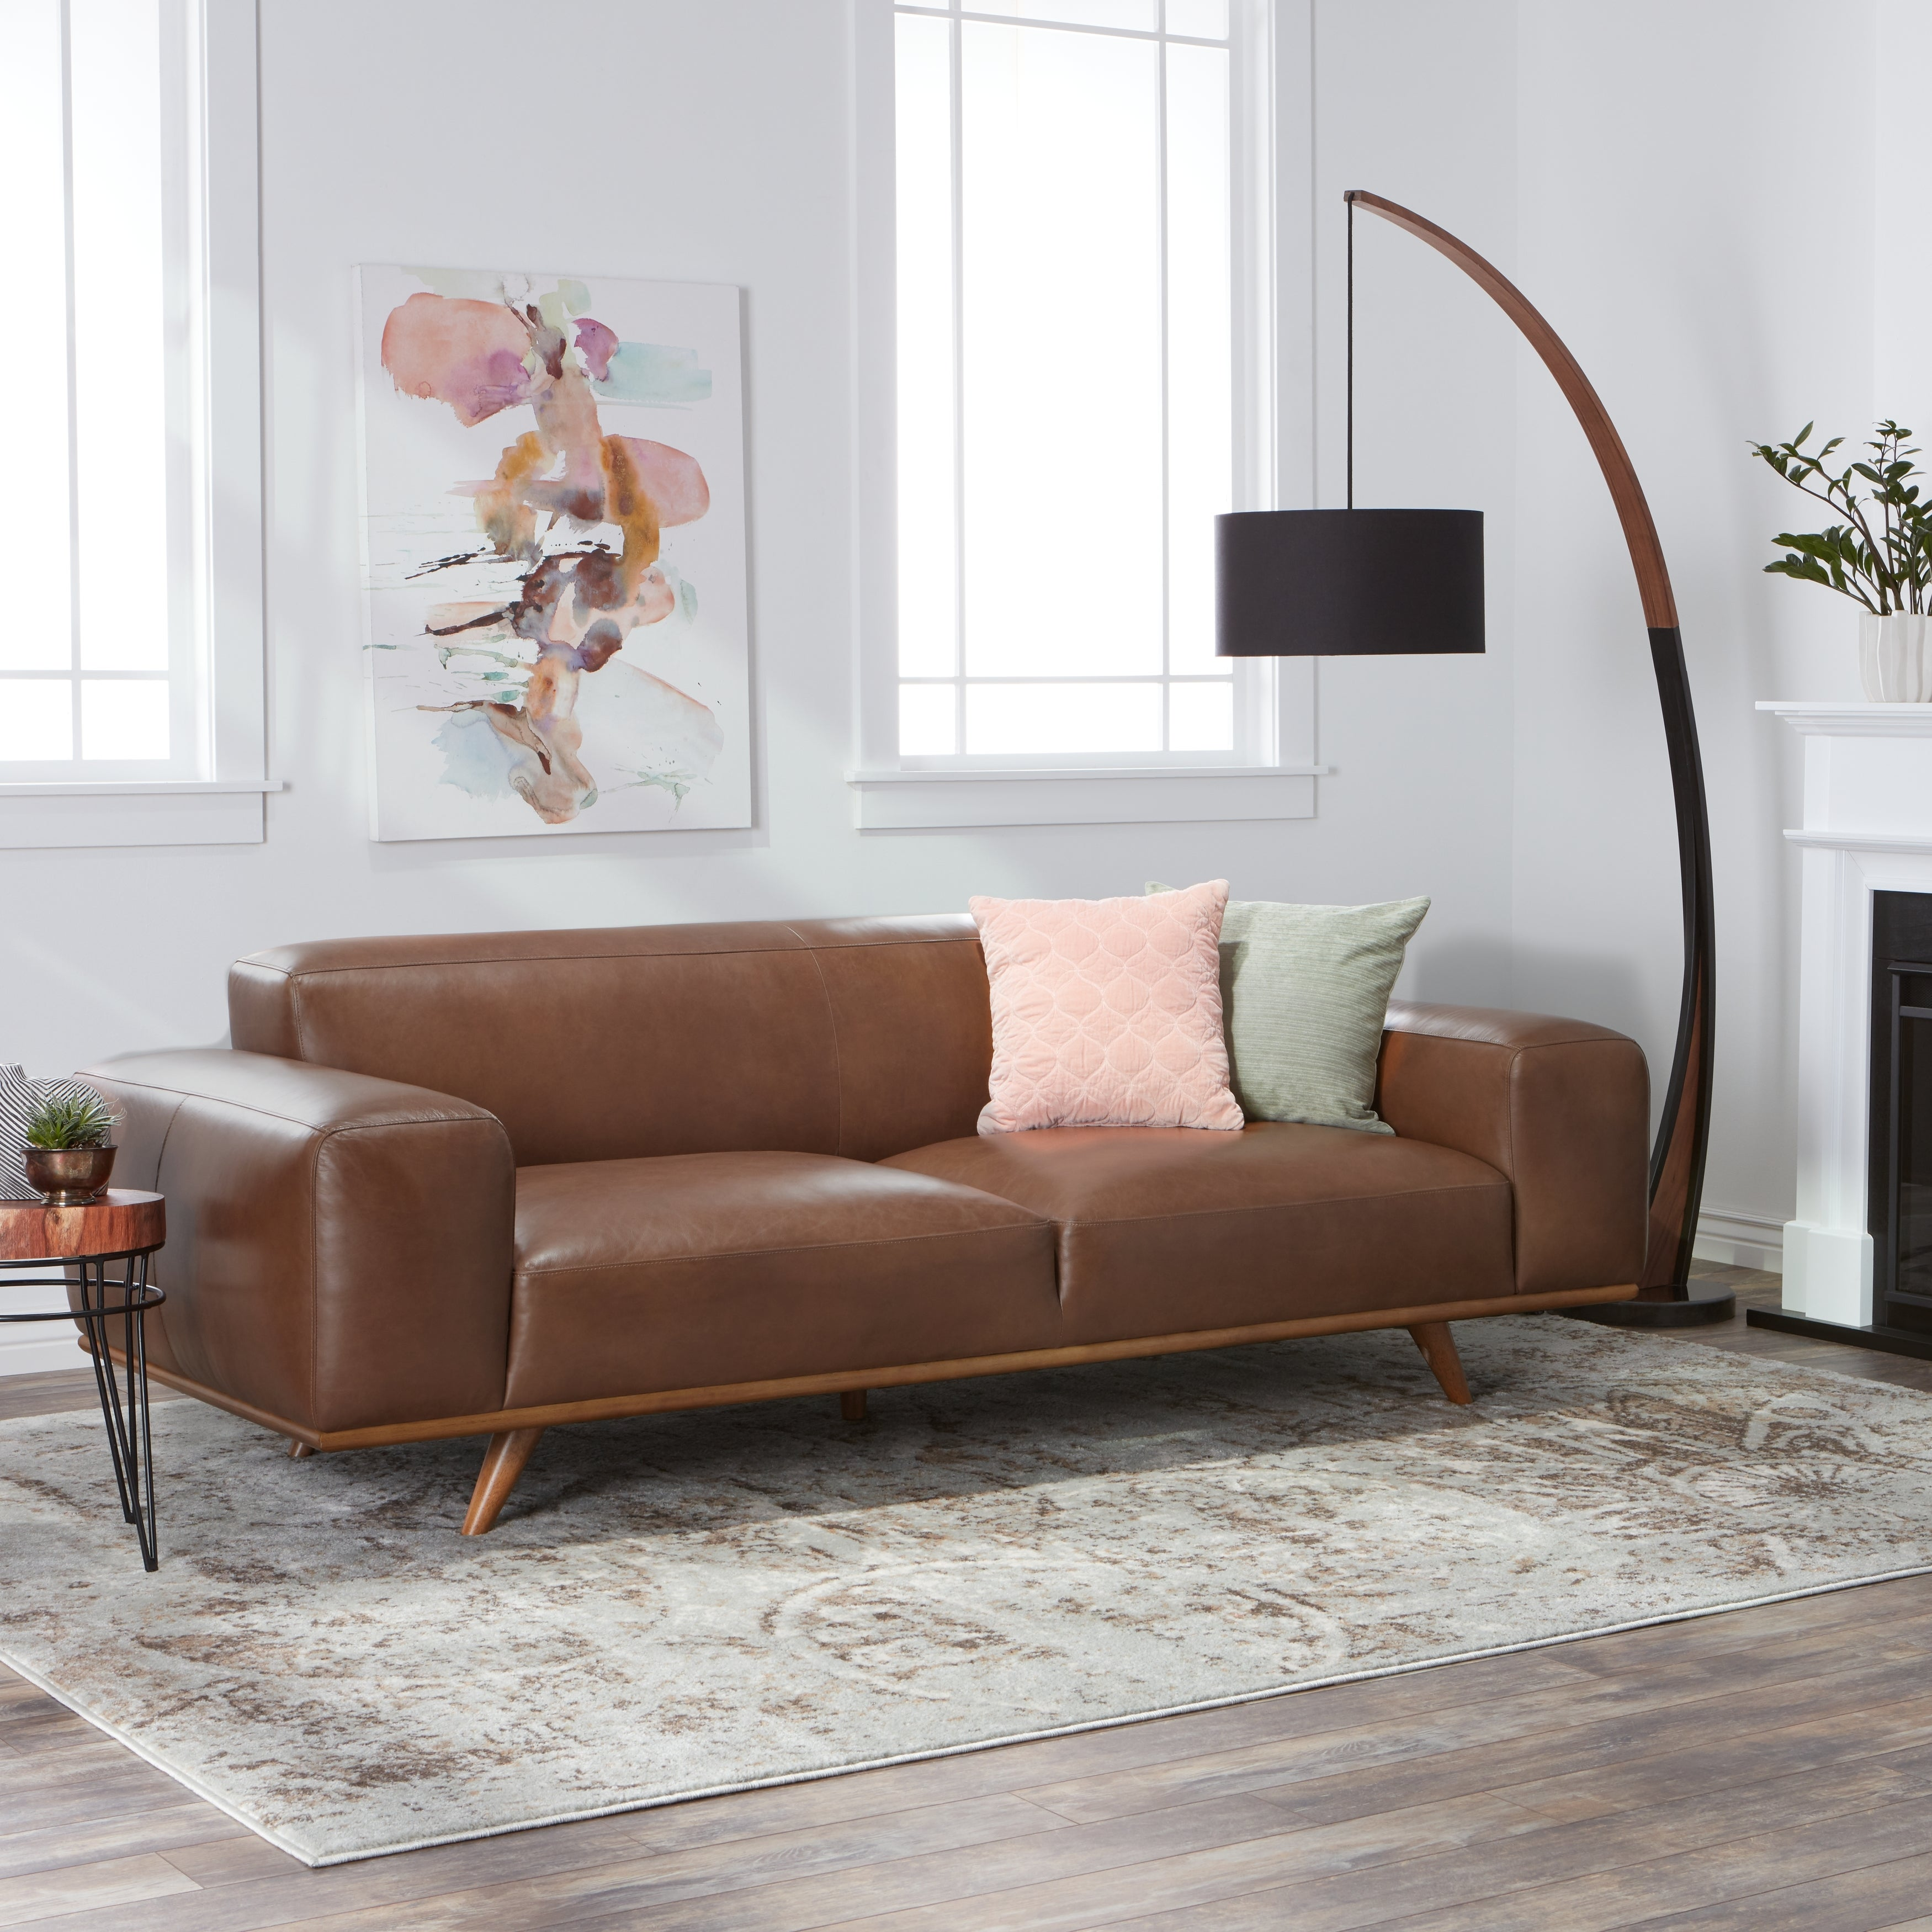 Tan Leather Sofa Bed New Standard 78 Modern Leather